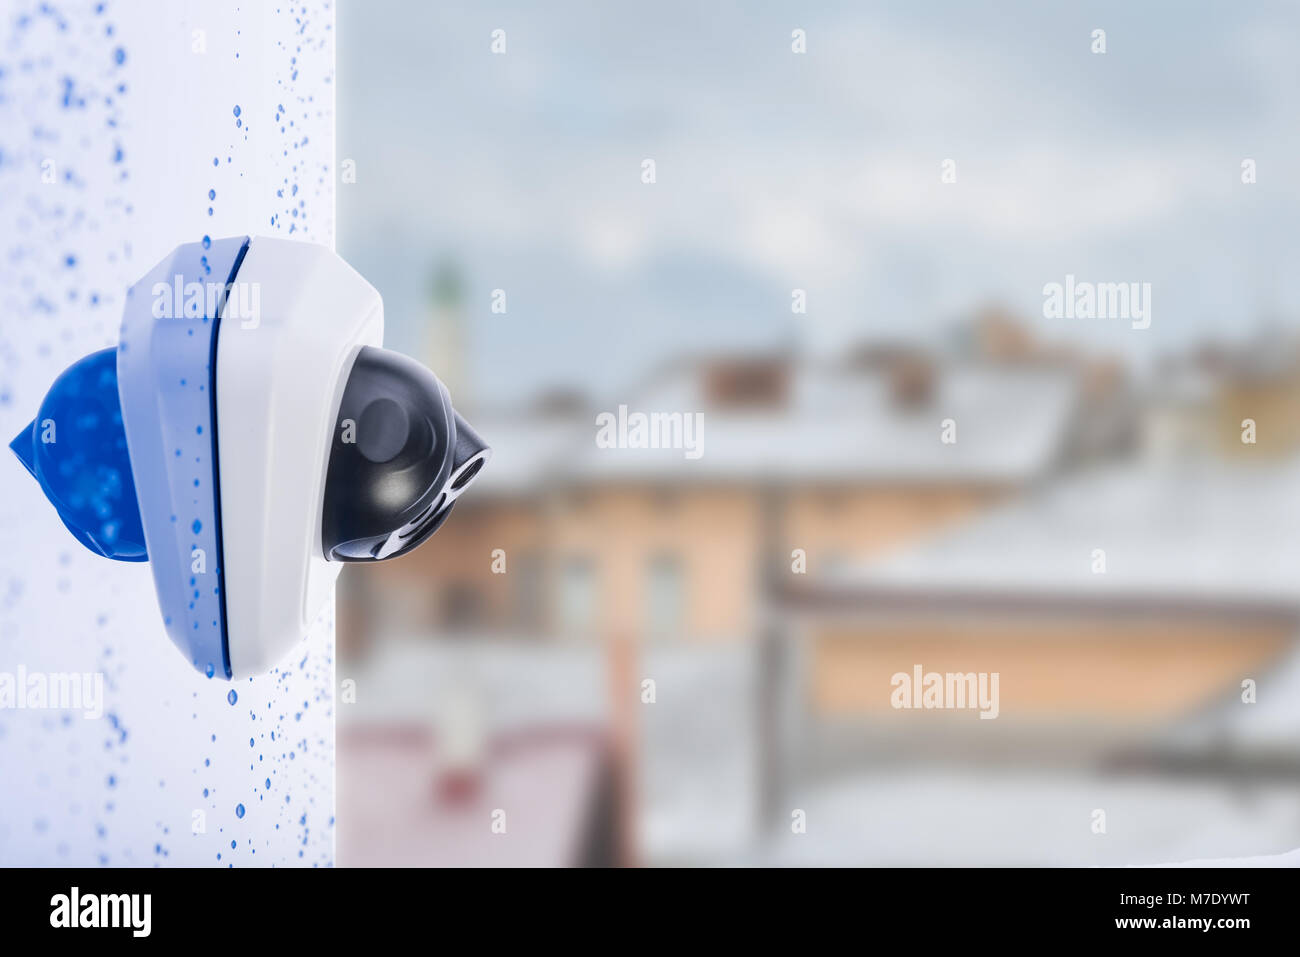 IP Camera on the wet wall, blurred city background, space for text. Concept - technology and security - Stock Image